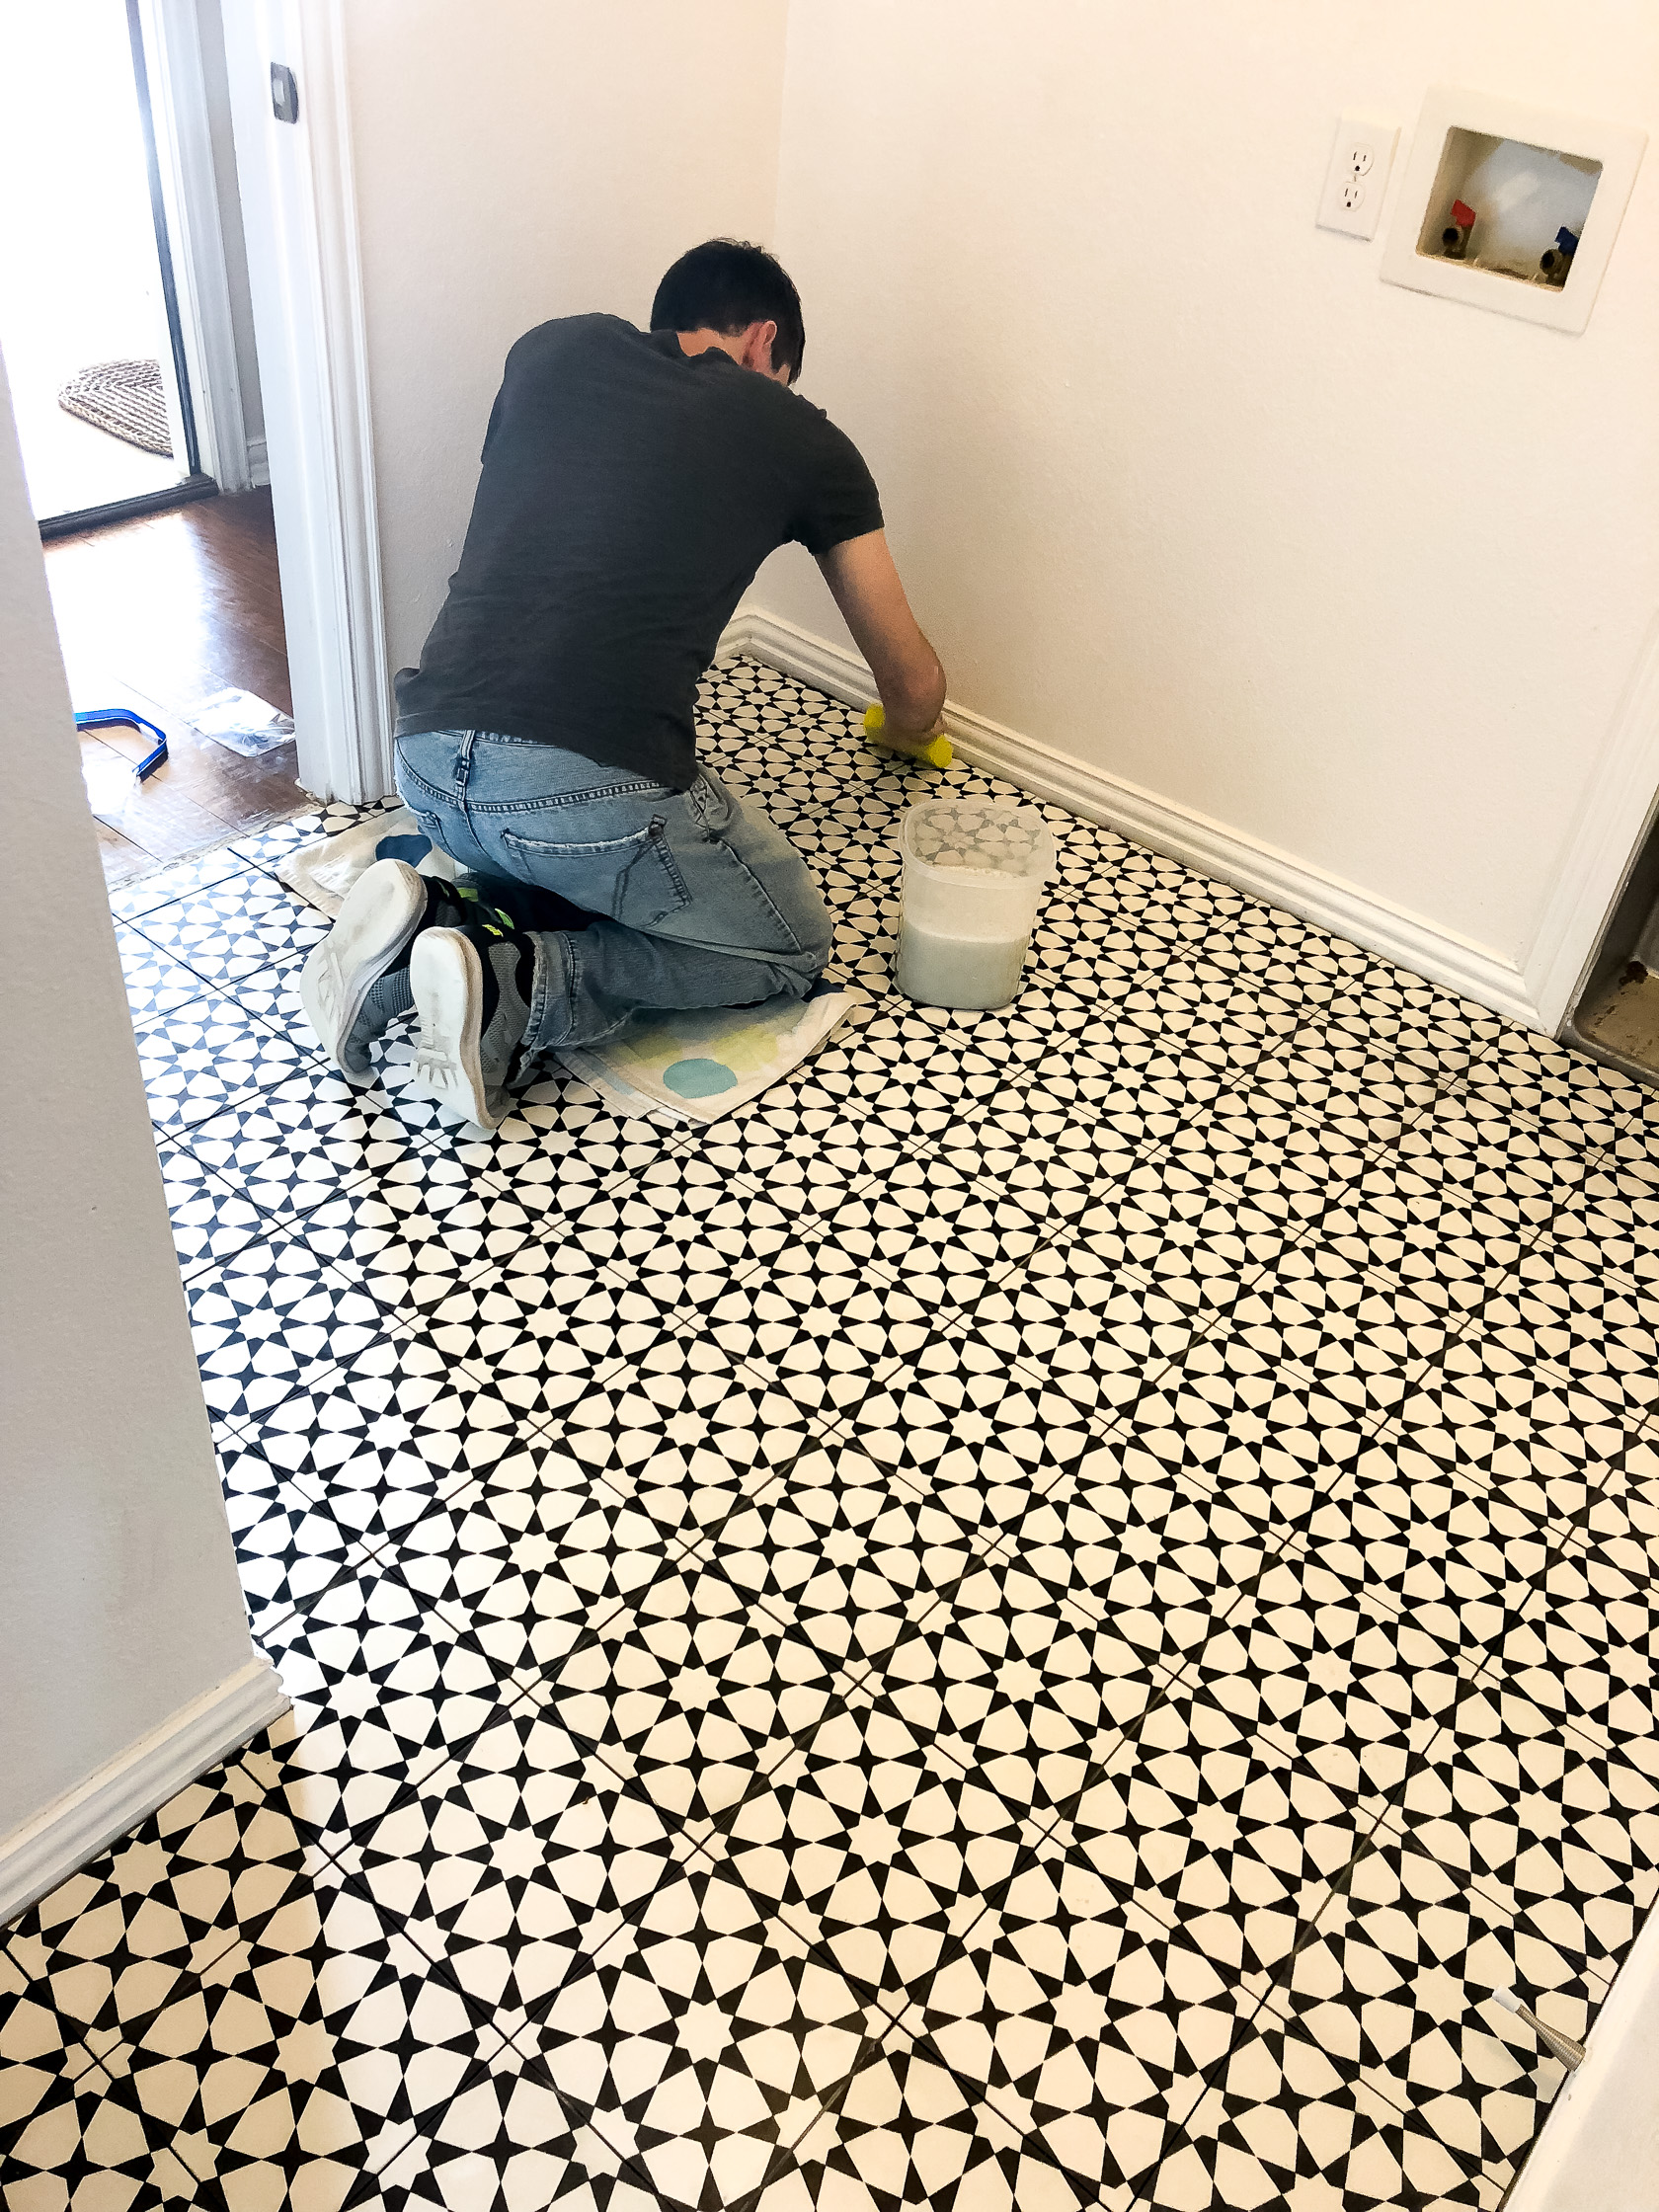 Home tour laundry bath makeover hello ivory rose we decided to buy a dark charcoal grout and aaron spent the day grouting the tile after consulting youtube to finish the job and it turned out fantastic dailygadgetfo Gallery